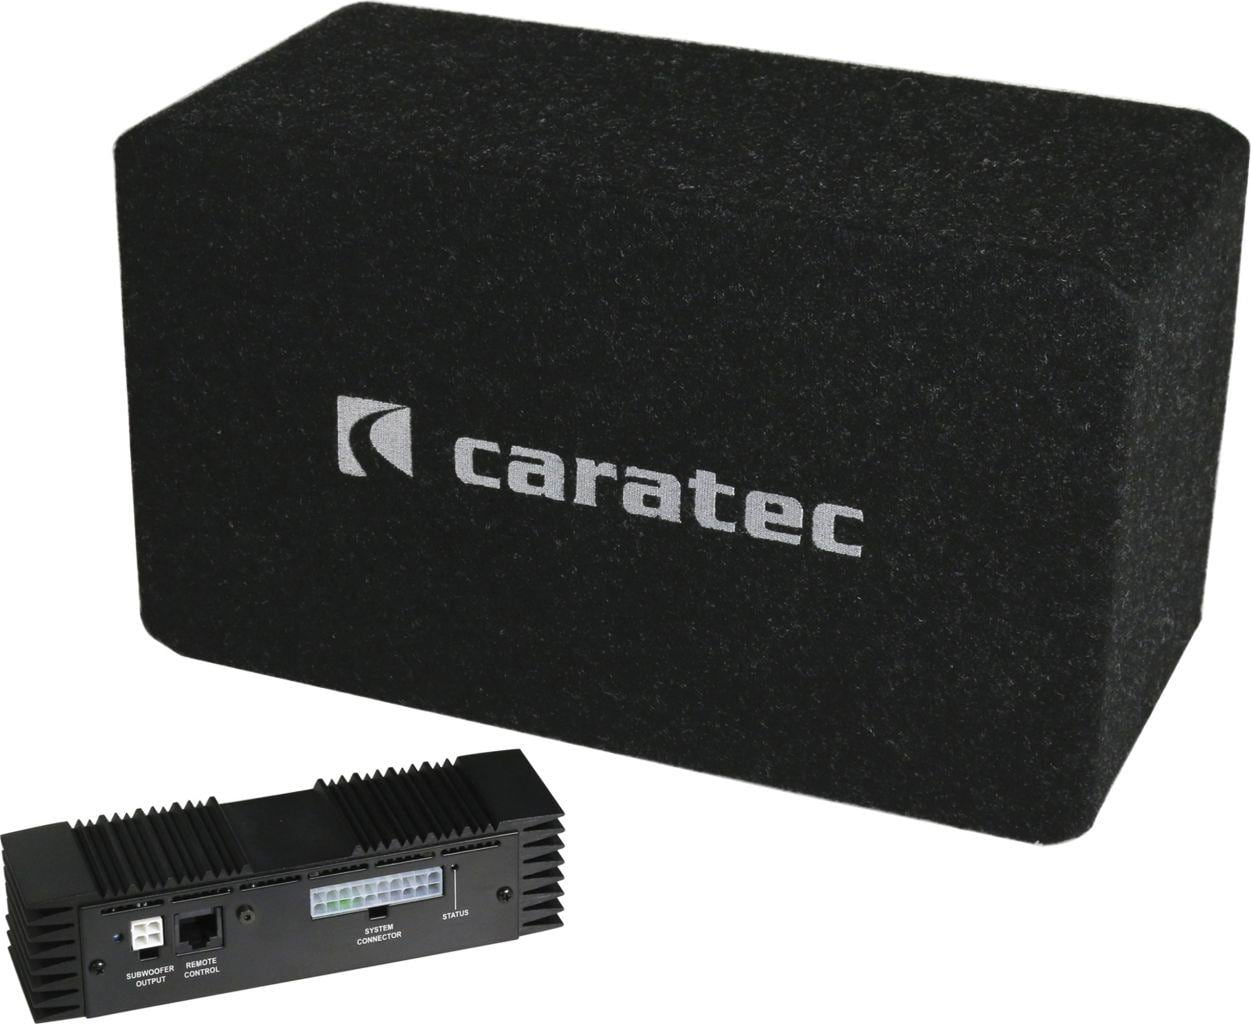 caratec cas203 audio soundsystem f r reisemobile 4 kanal von caratec bei camping wagner. Black Bedroom Furniture Sets. Home Design Ideas